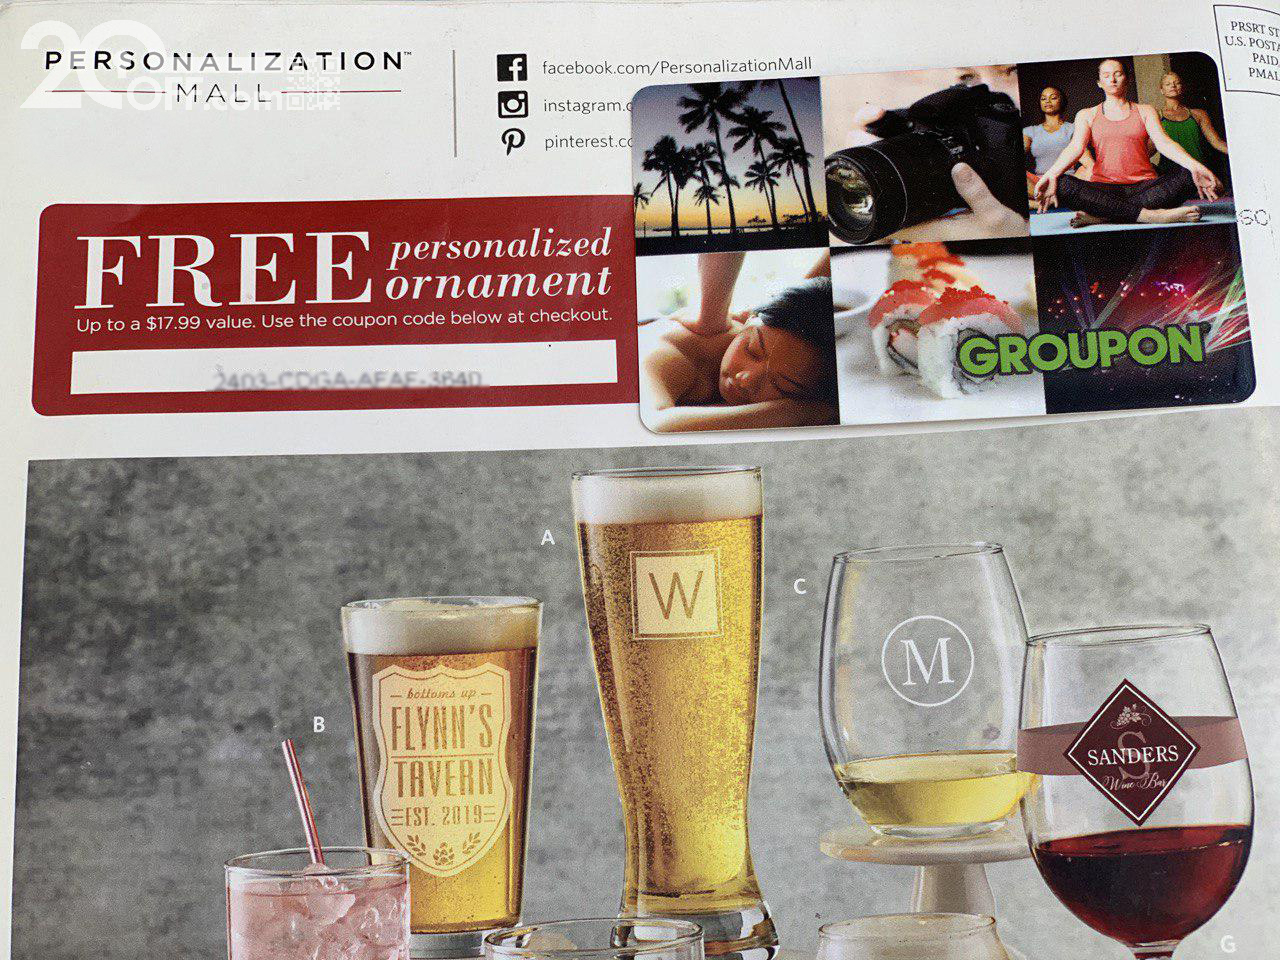 Personalization Mall vs Groupon Promotions